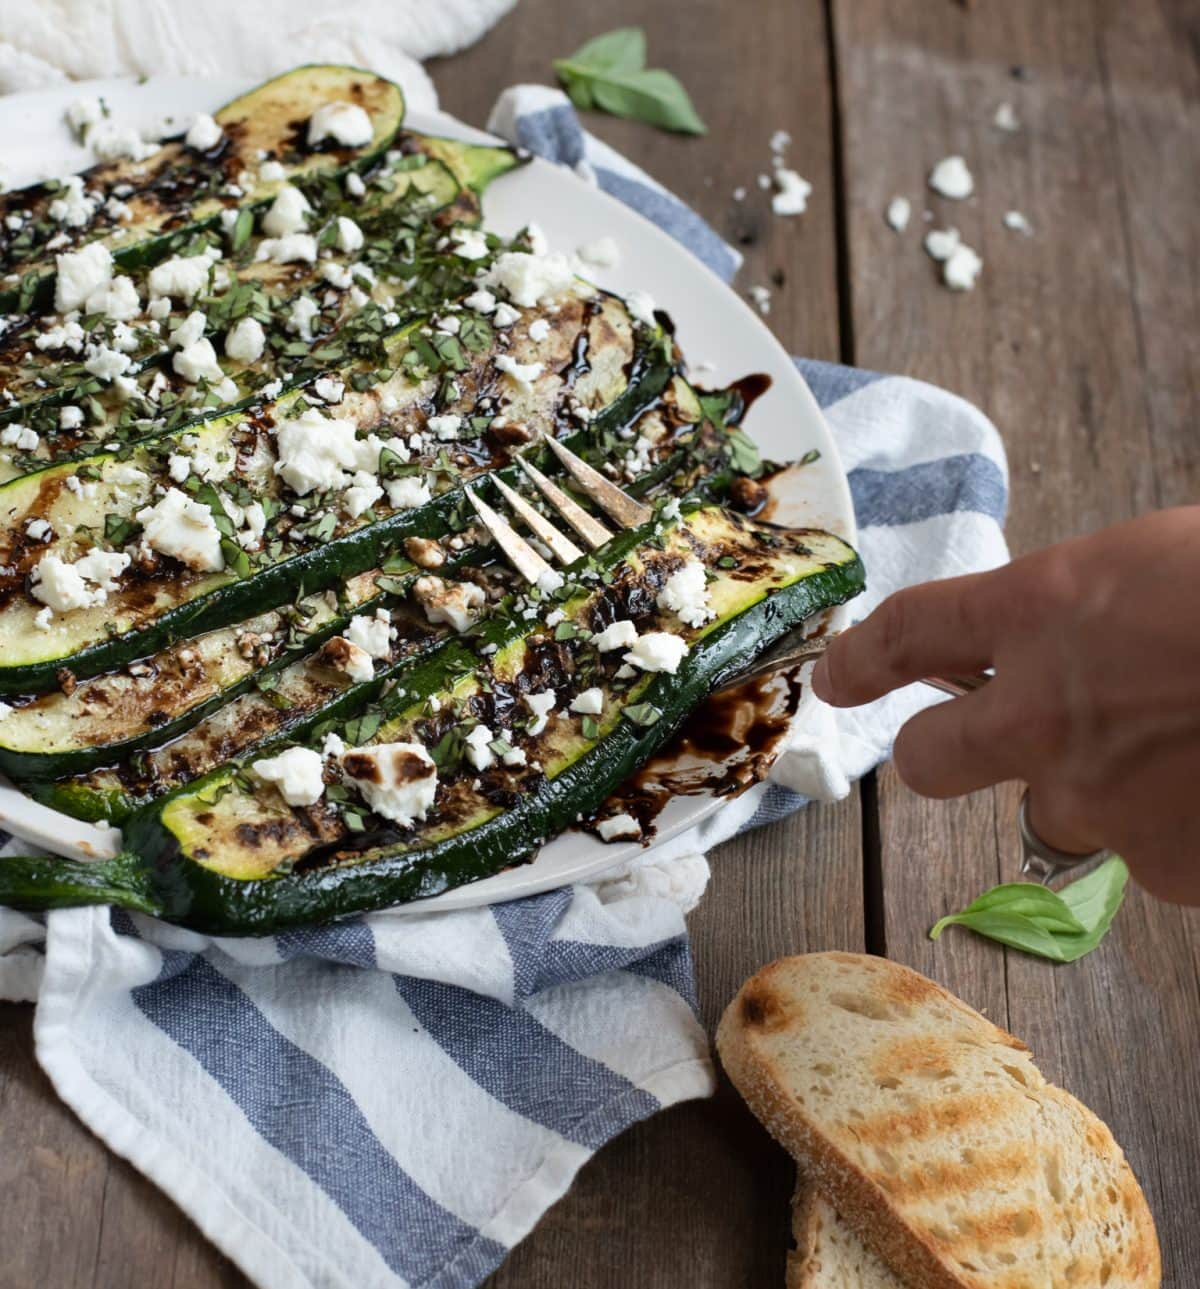 grilled zucchini being lifted with a fork